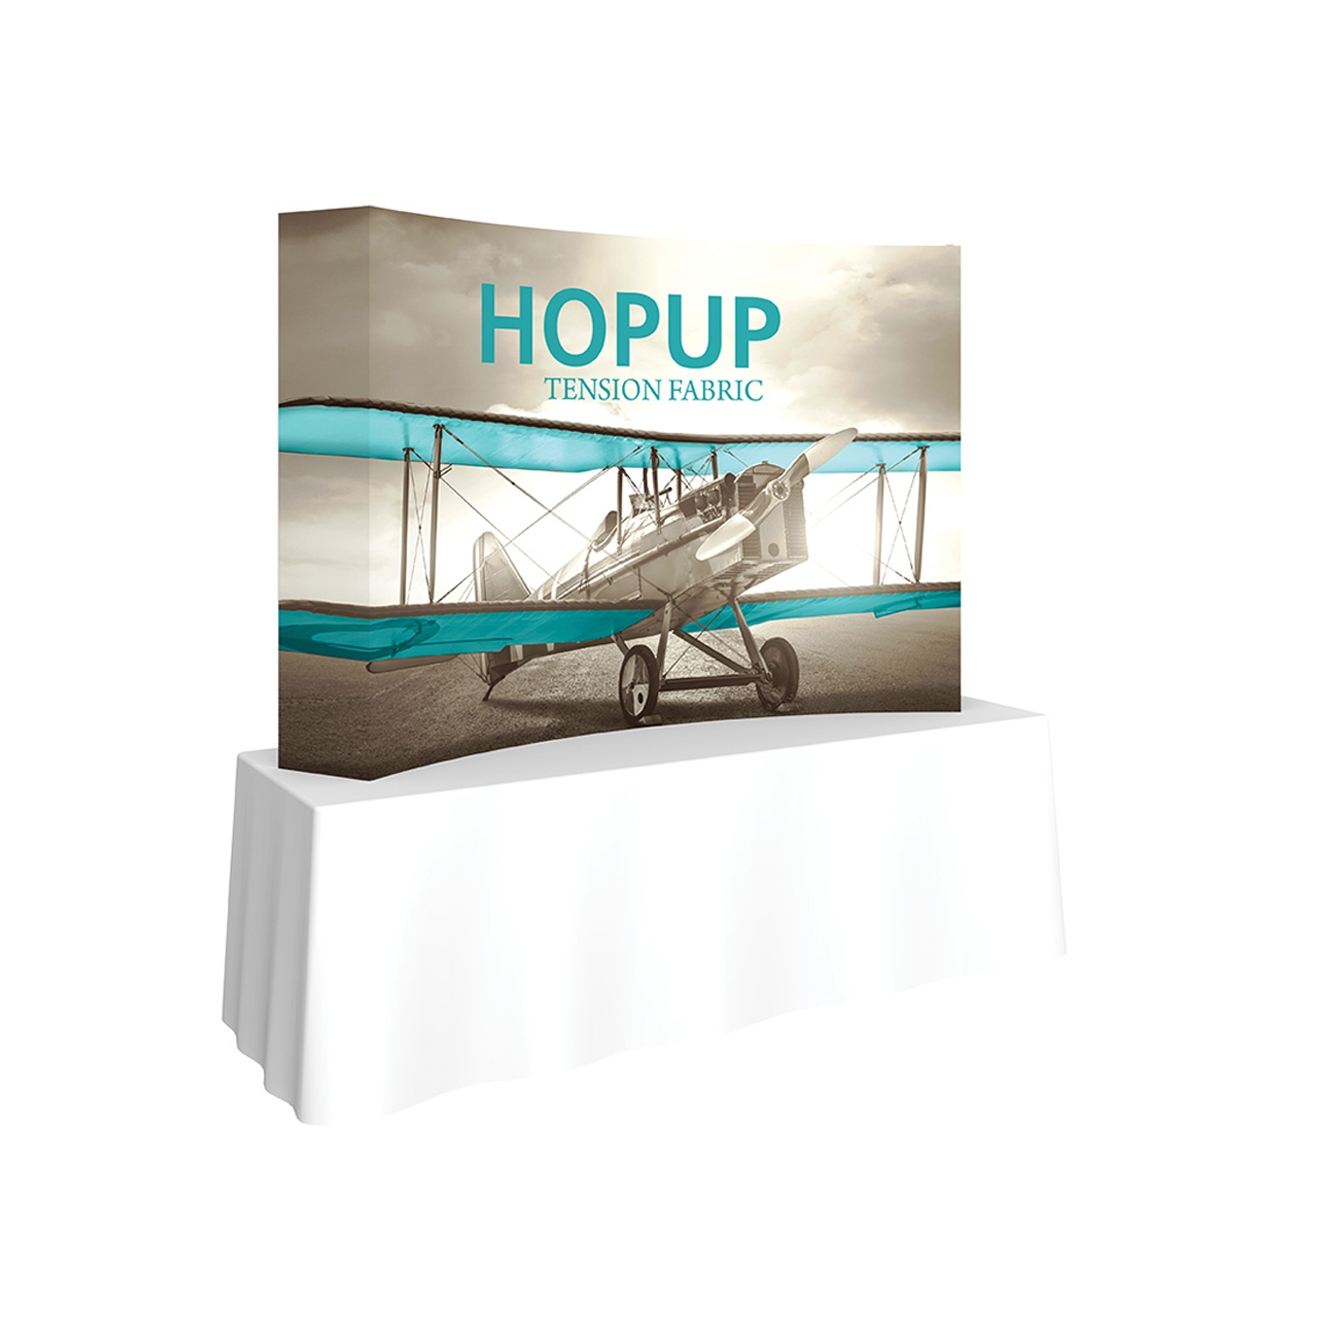 Pop-Fab 3x2 Tabletop Curved Tension Fabric Display